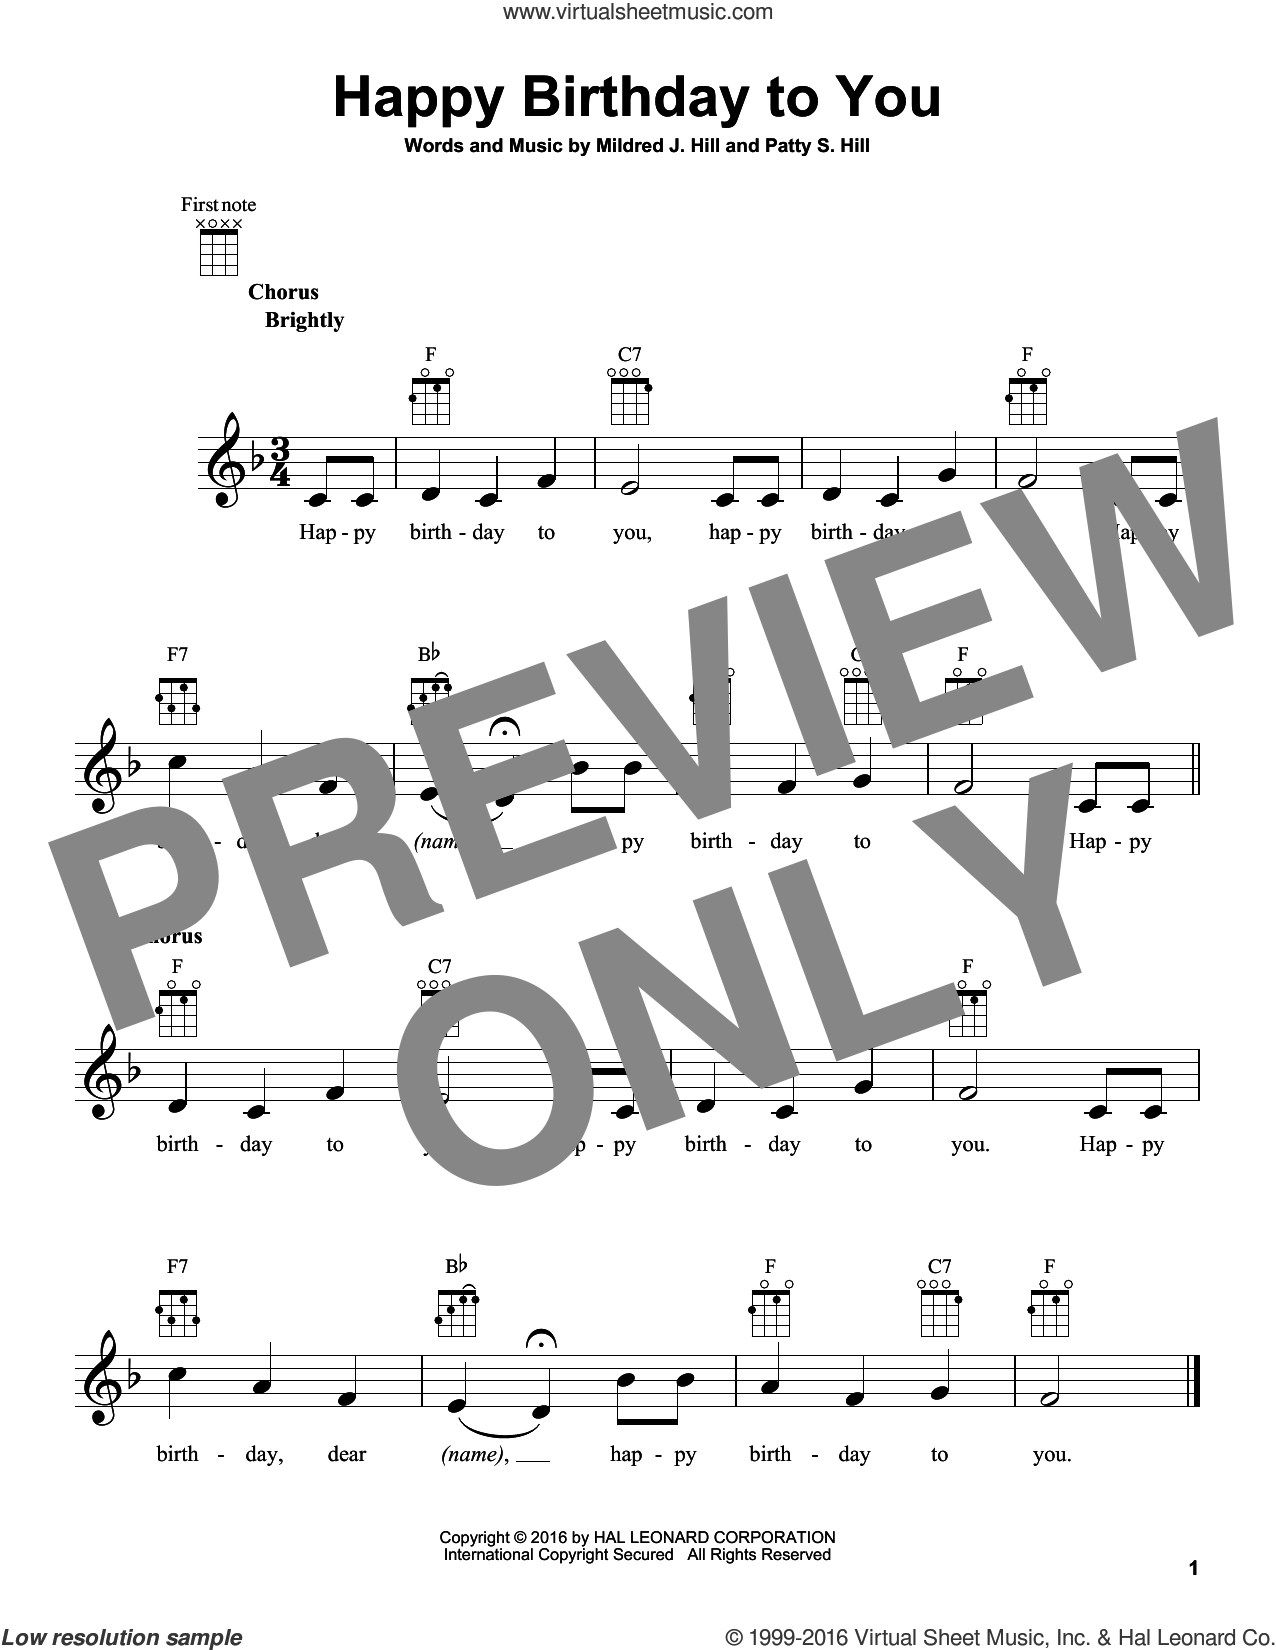 Happy Birthday To You sheet music for ukulele by Mildred J. Hill and Patty Smith Hill, intermediate skill level